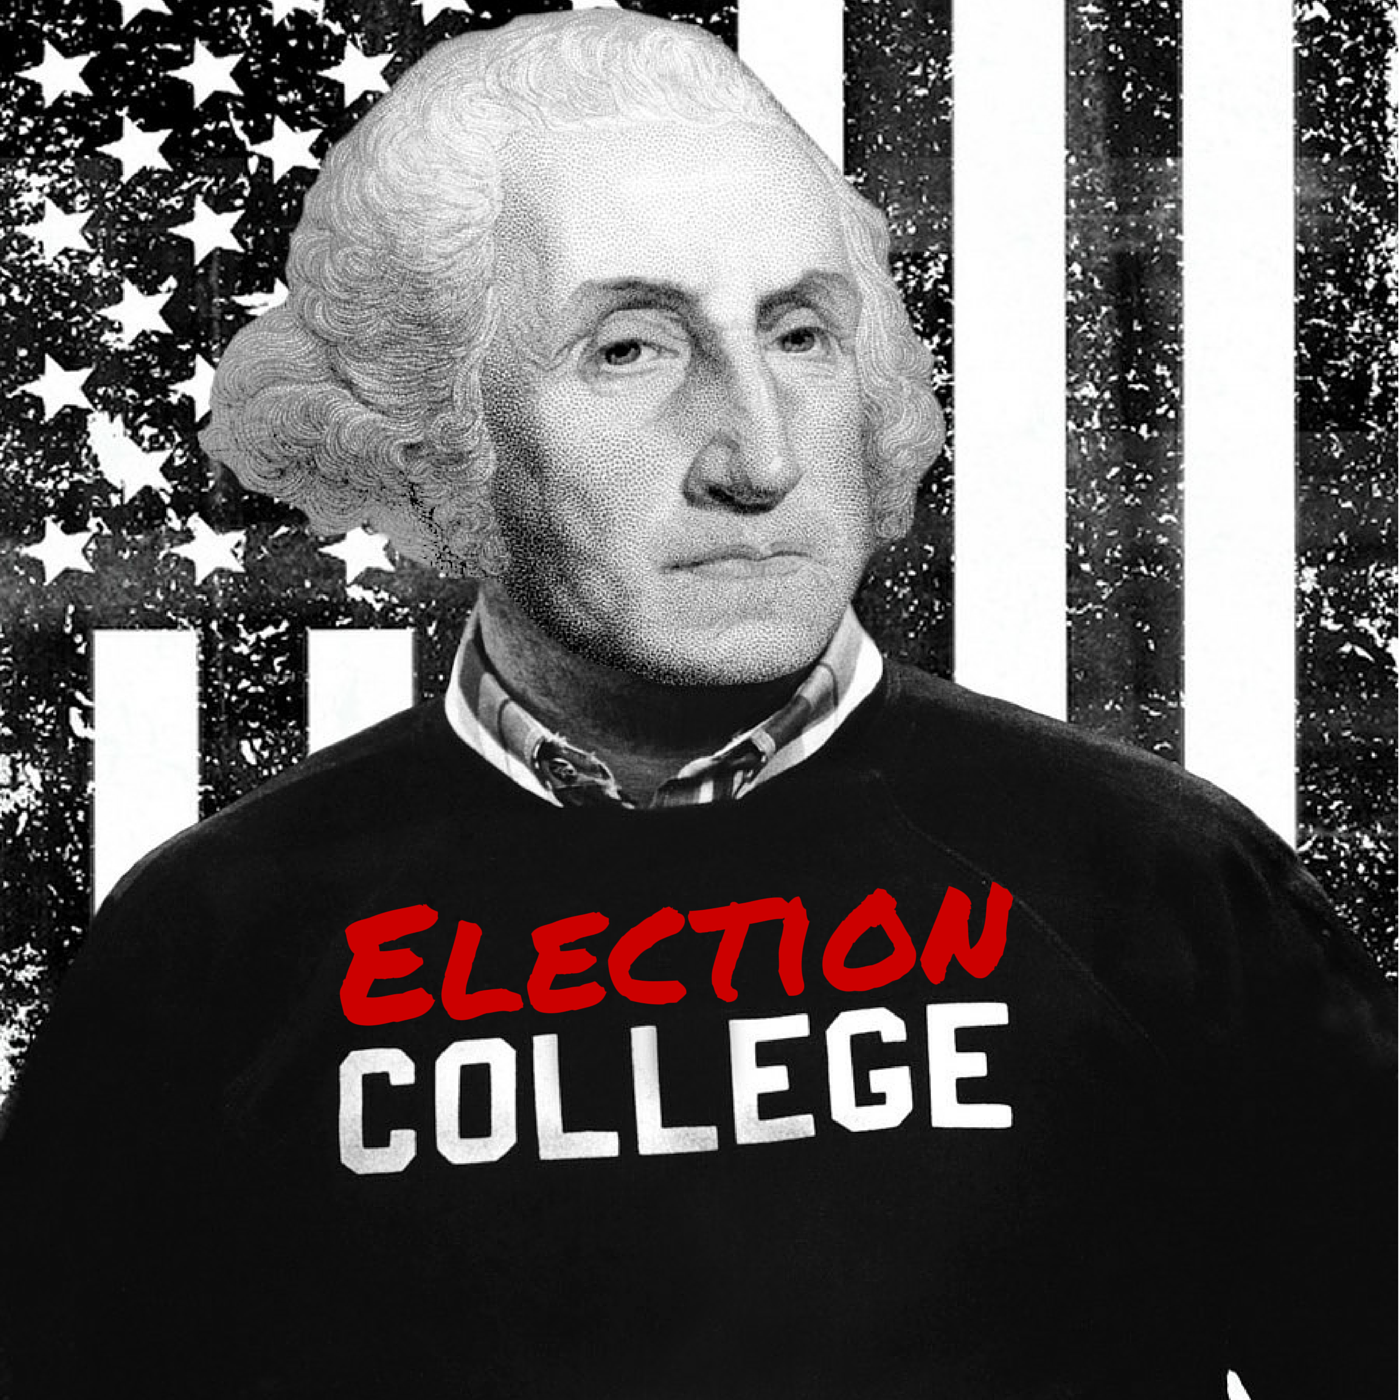 John Quincy Adams Has Been Everywhere (His Life - Part 1) | Episode #130 | Election College: United States Presidential Election History